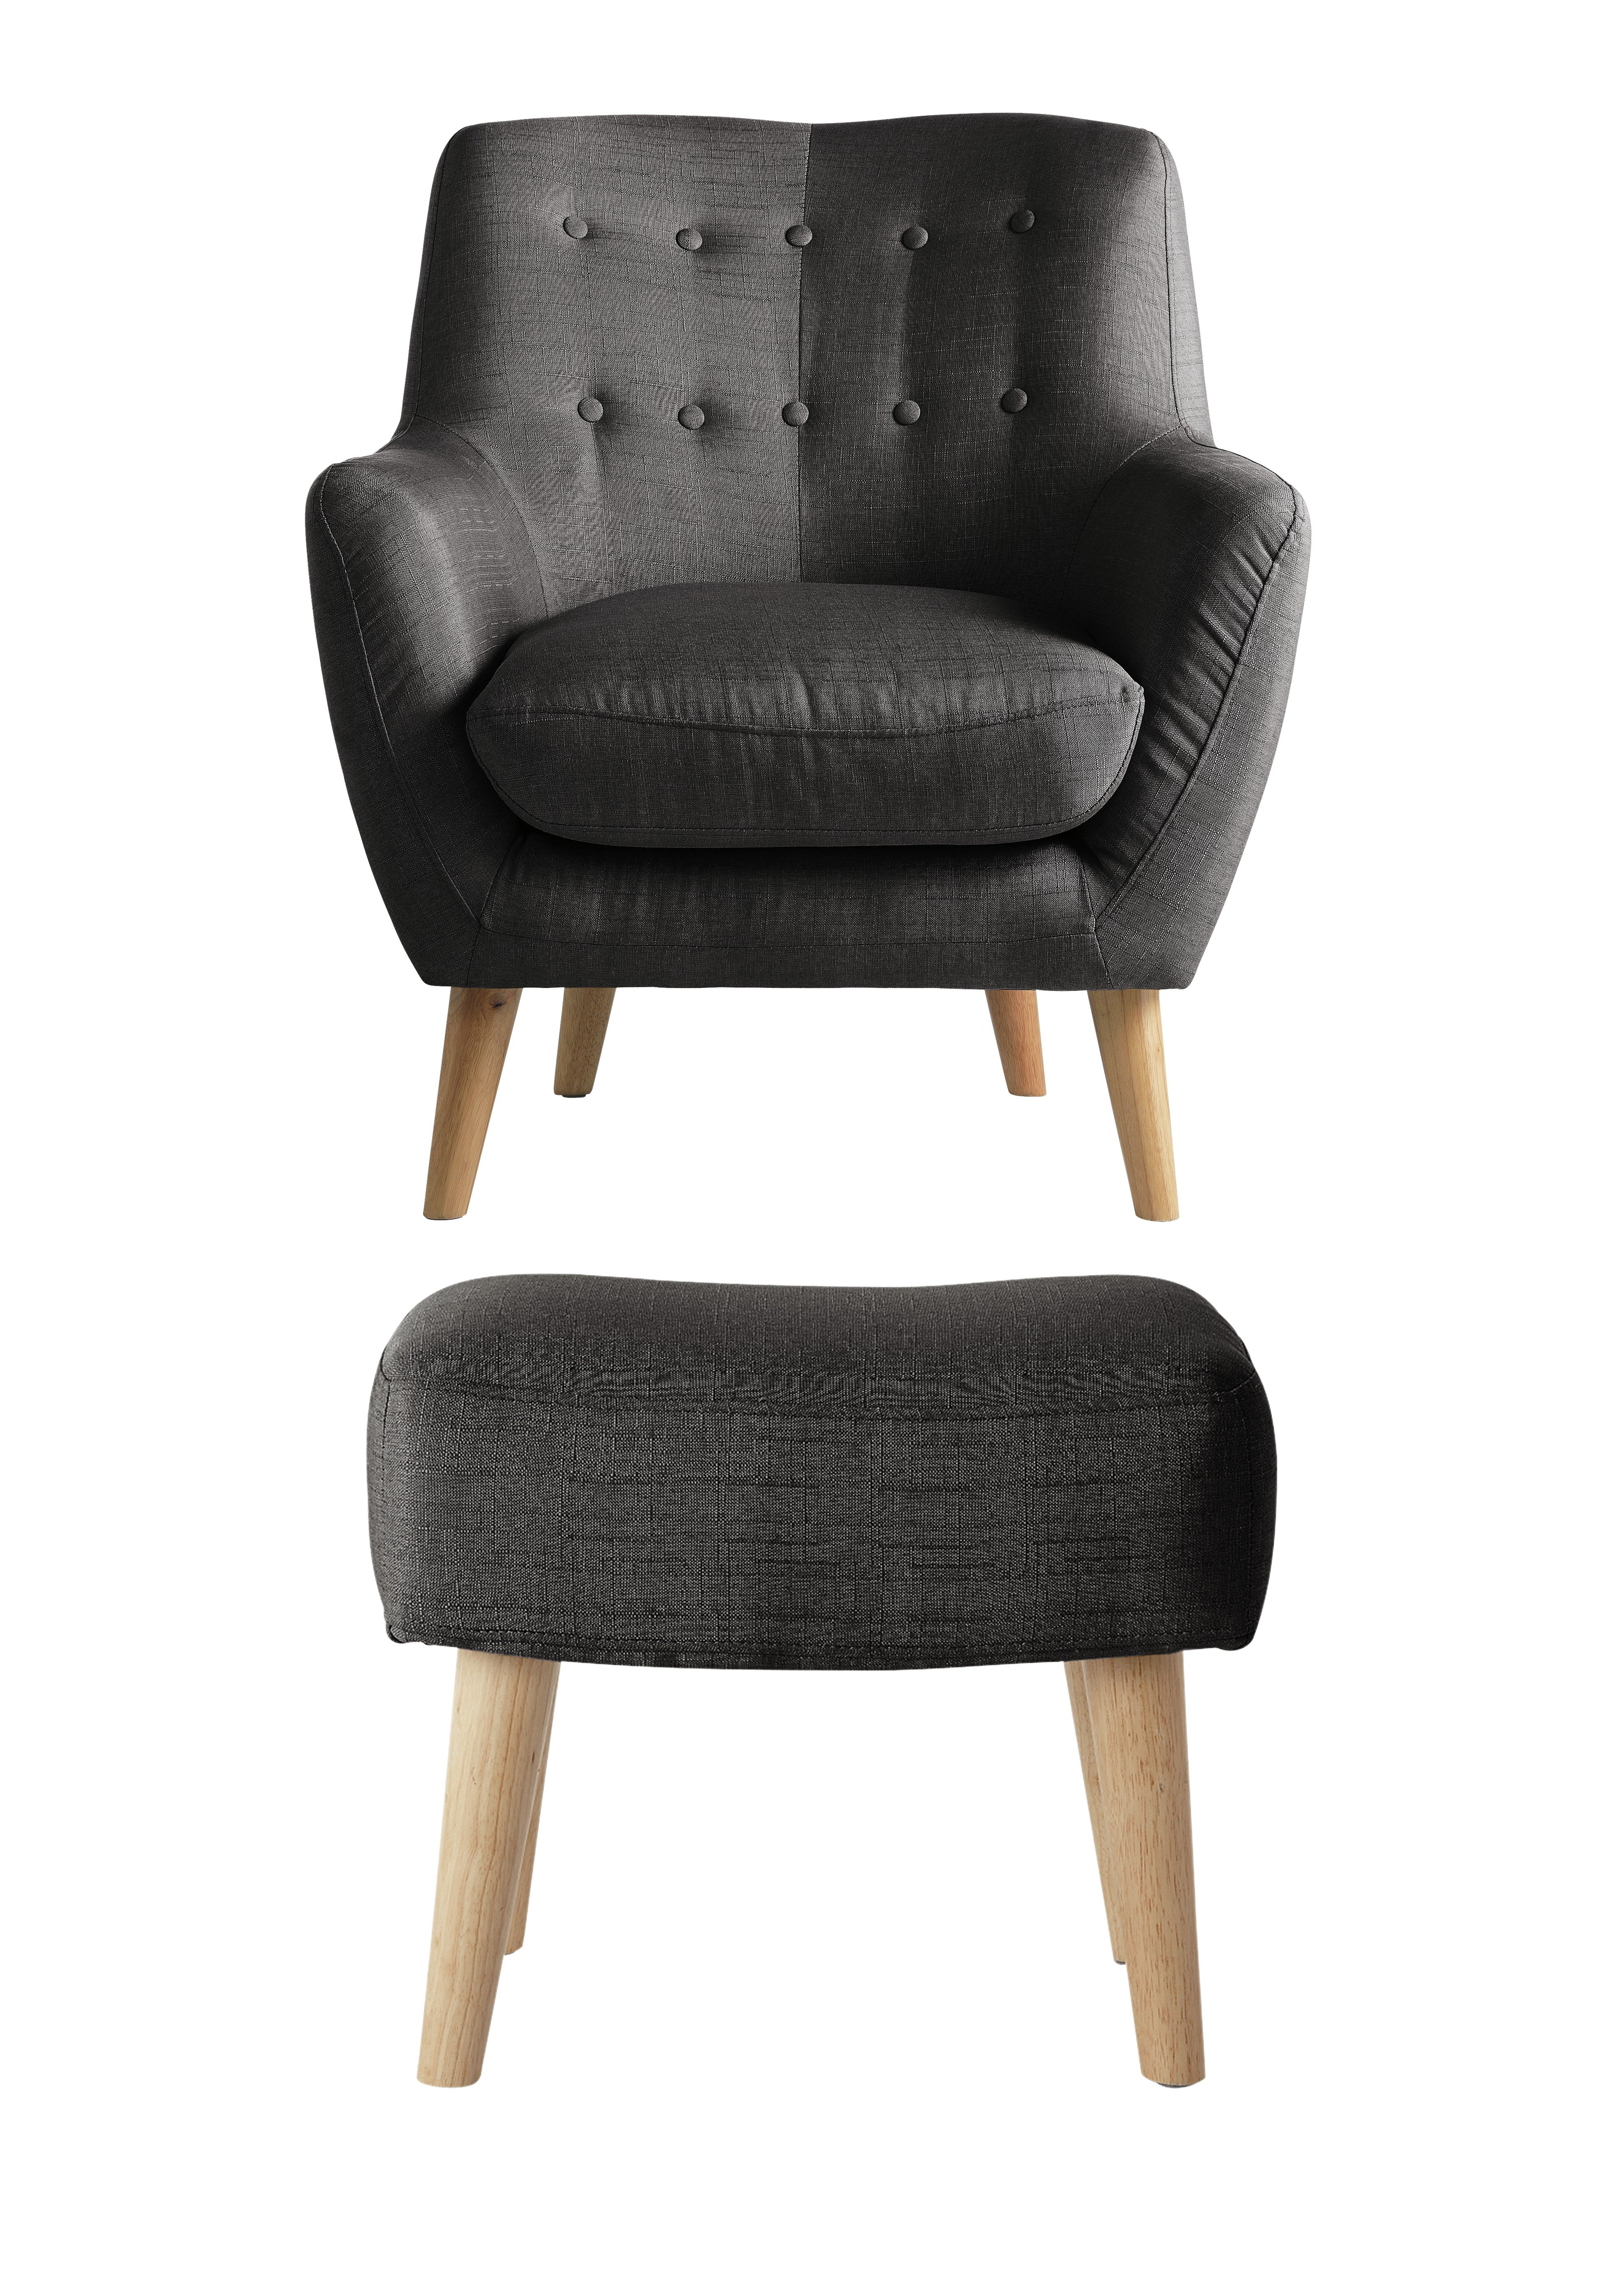 chair stool argos traditional barber chairs hygena otis fabric and footstool charcoal review